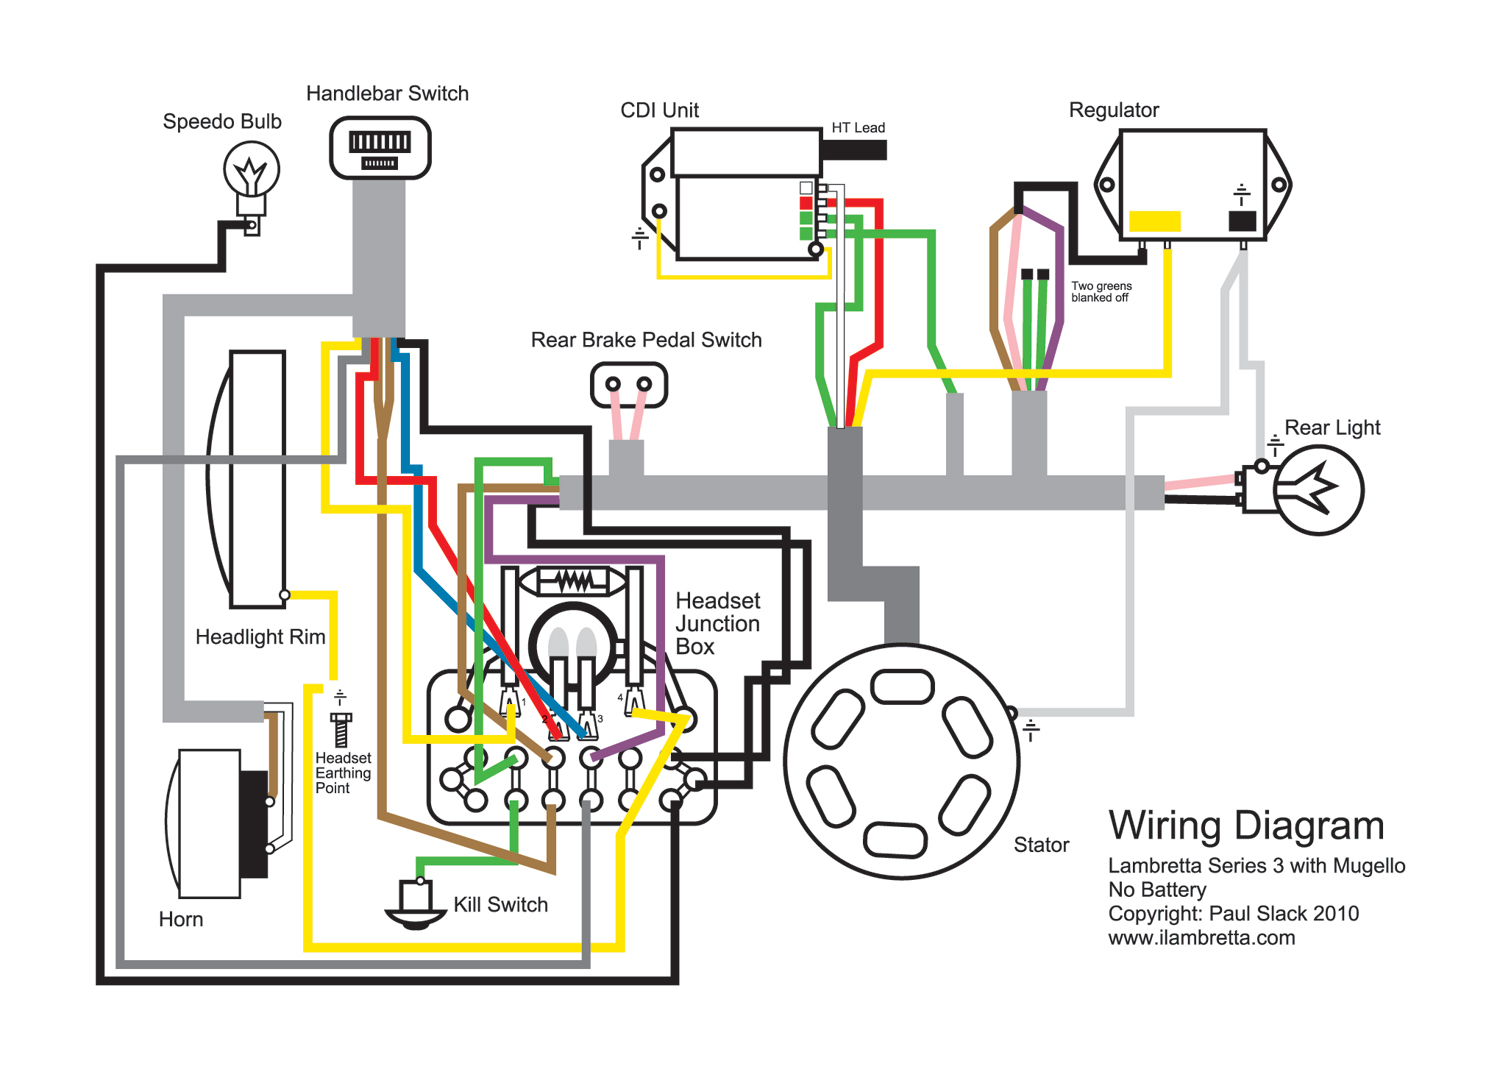 Lambretta Wiring Diagram 2003 Honda Crv Ac Restoration The Loom